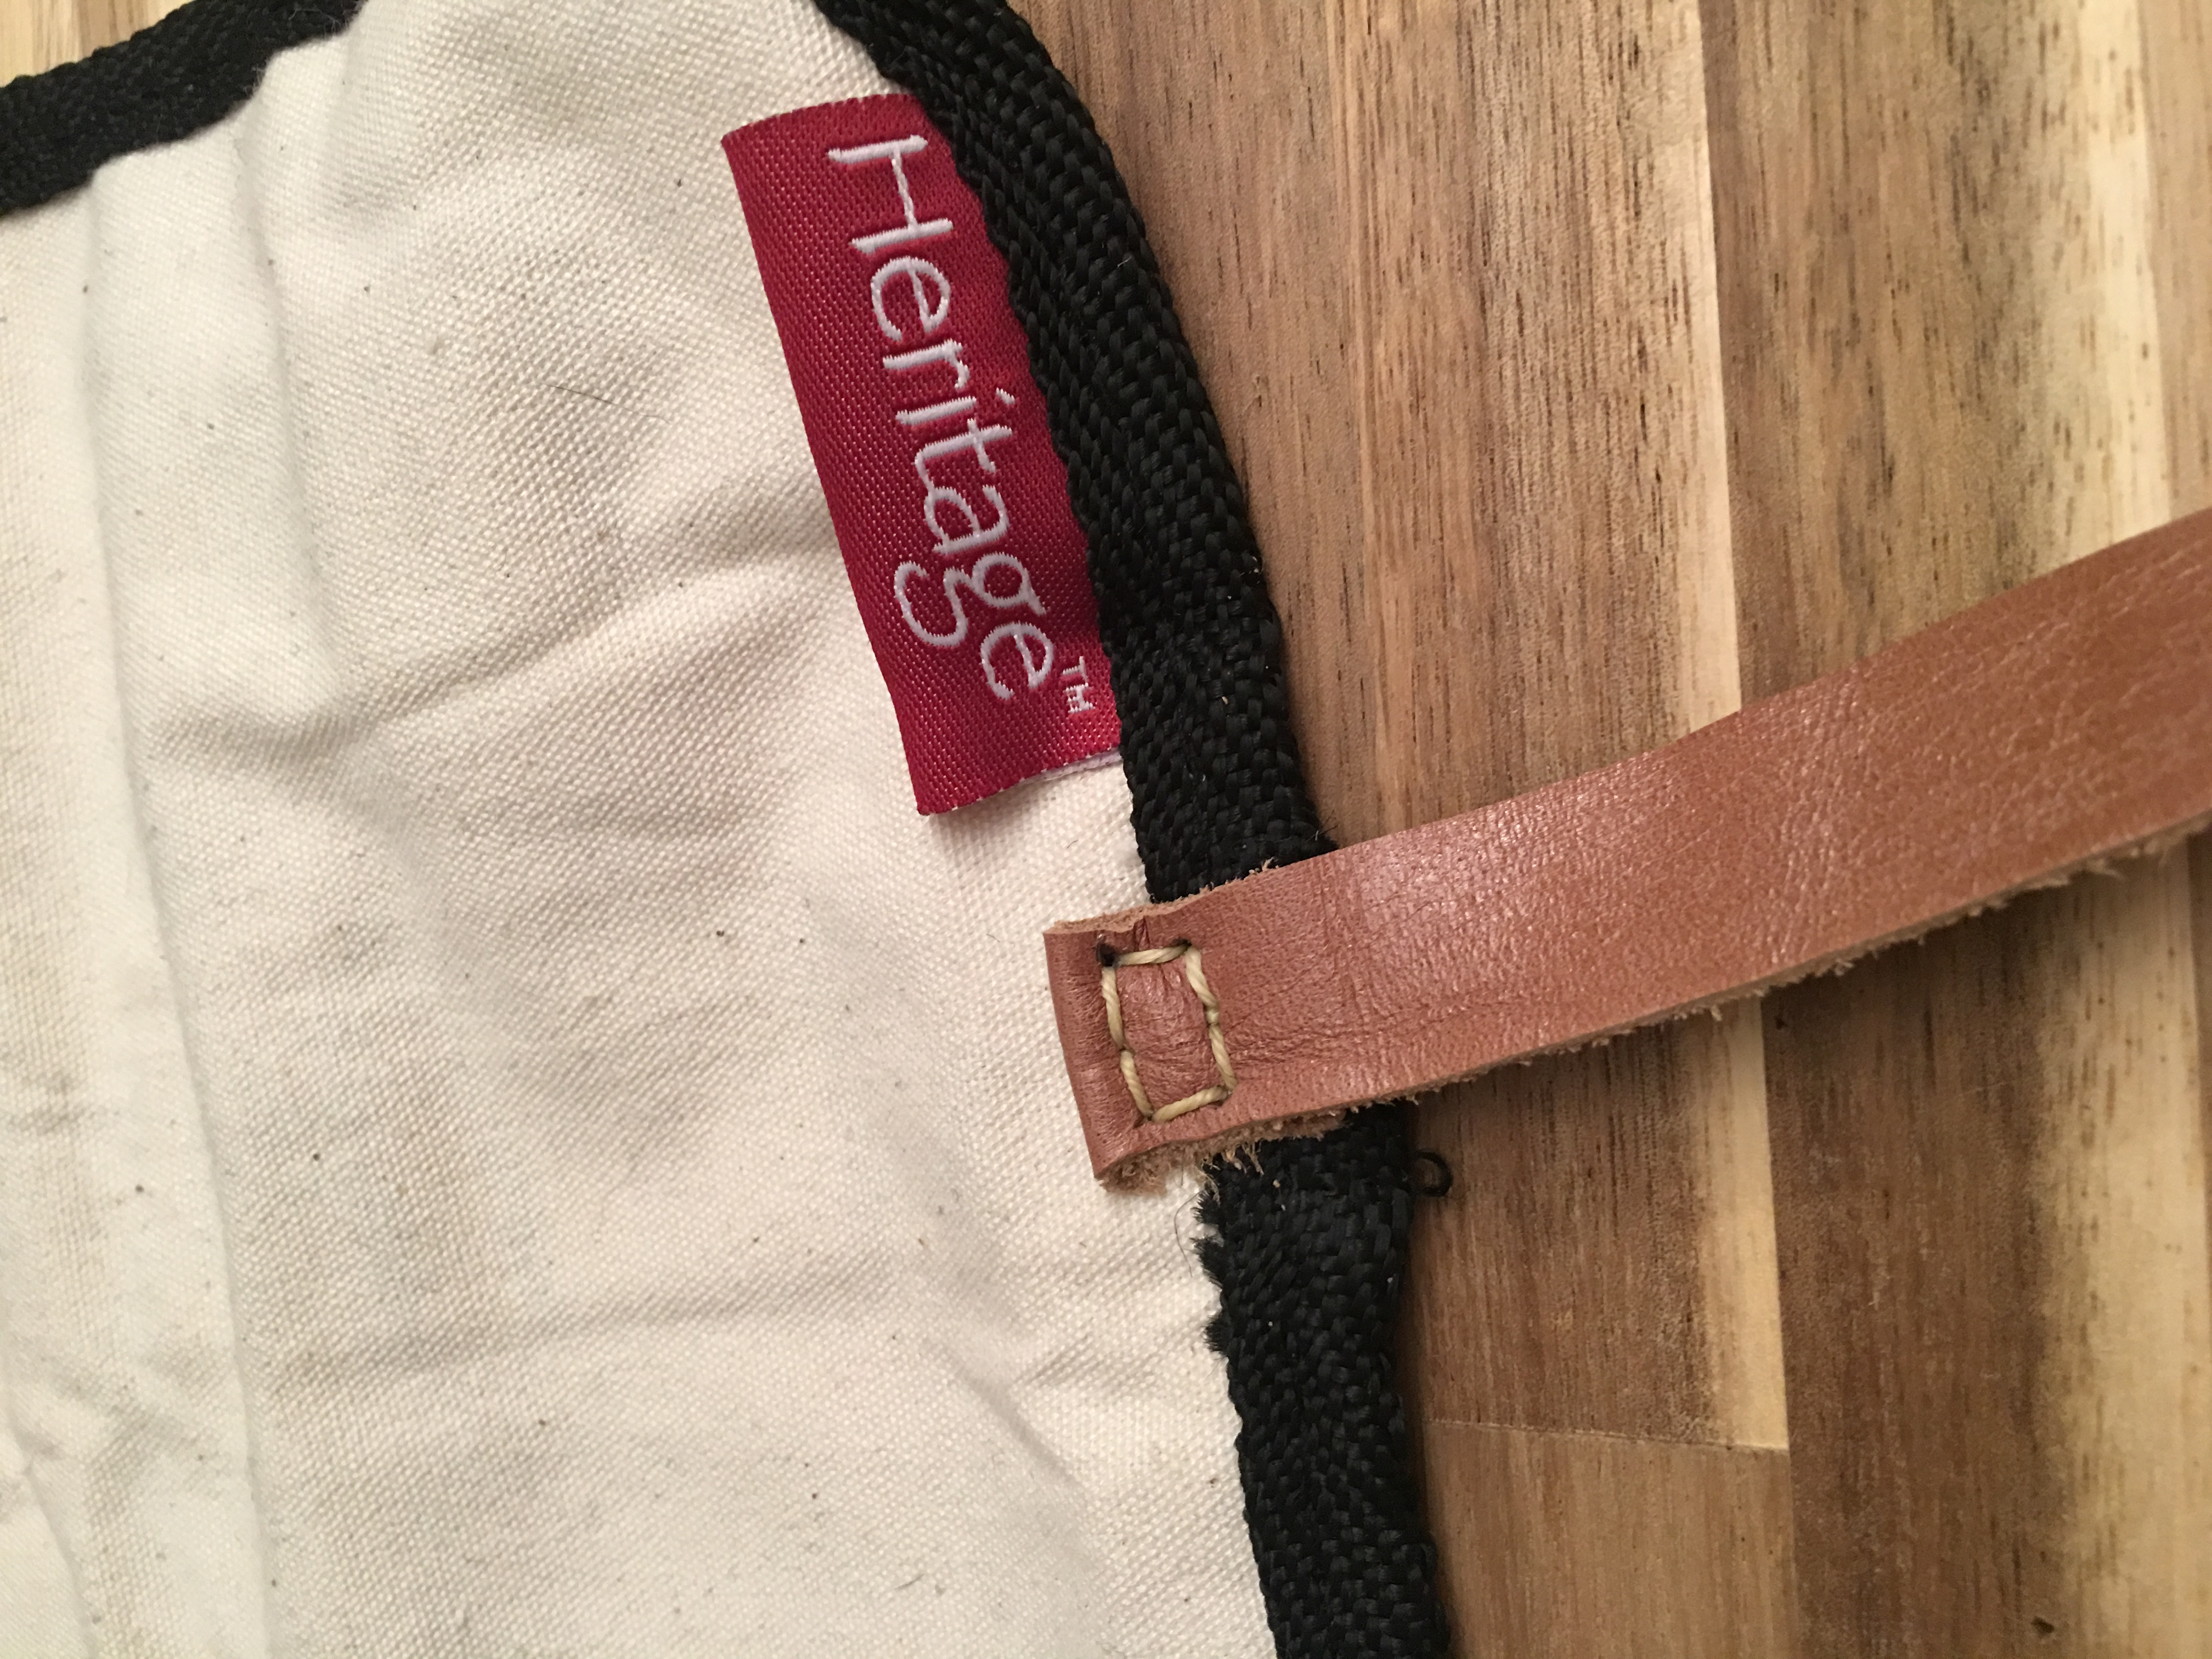 My first sewing-awl saddle stitch!! Pen roll strap